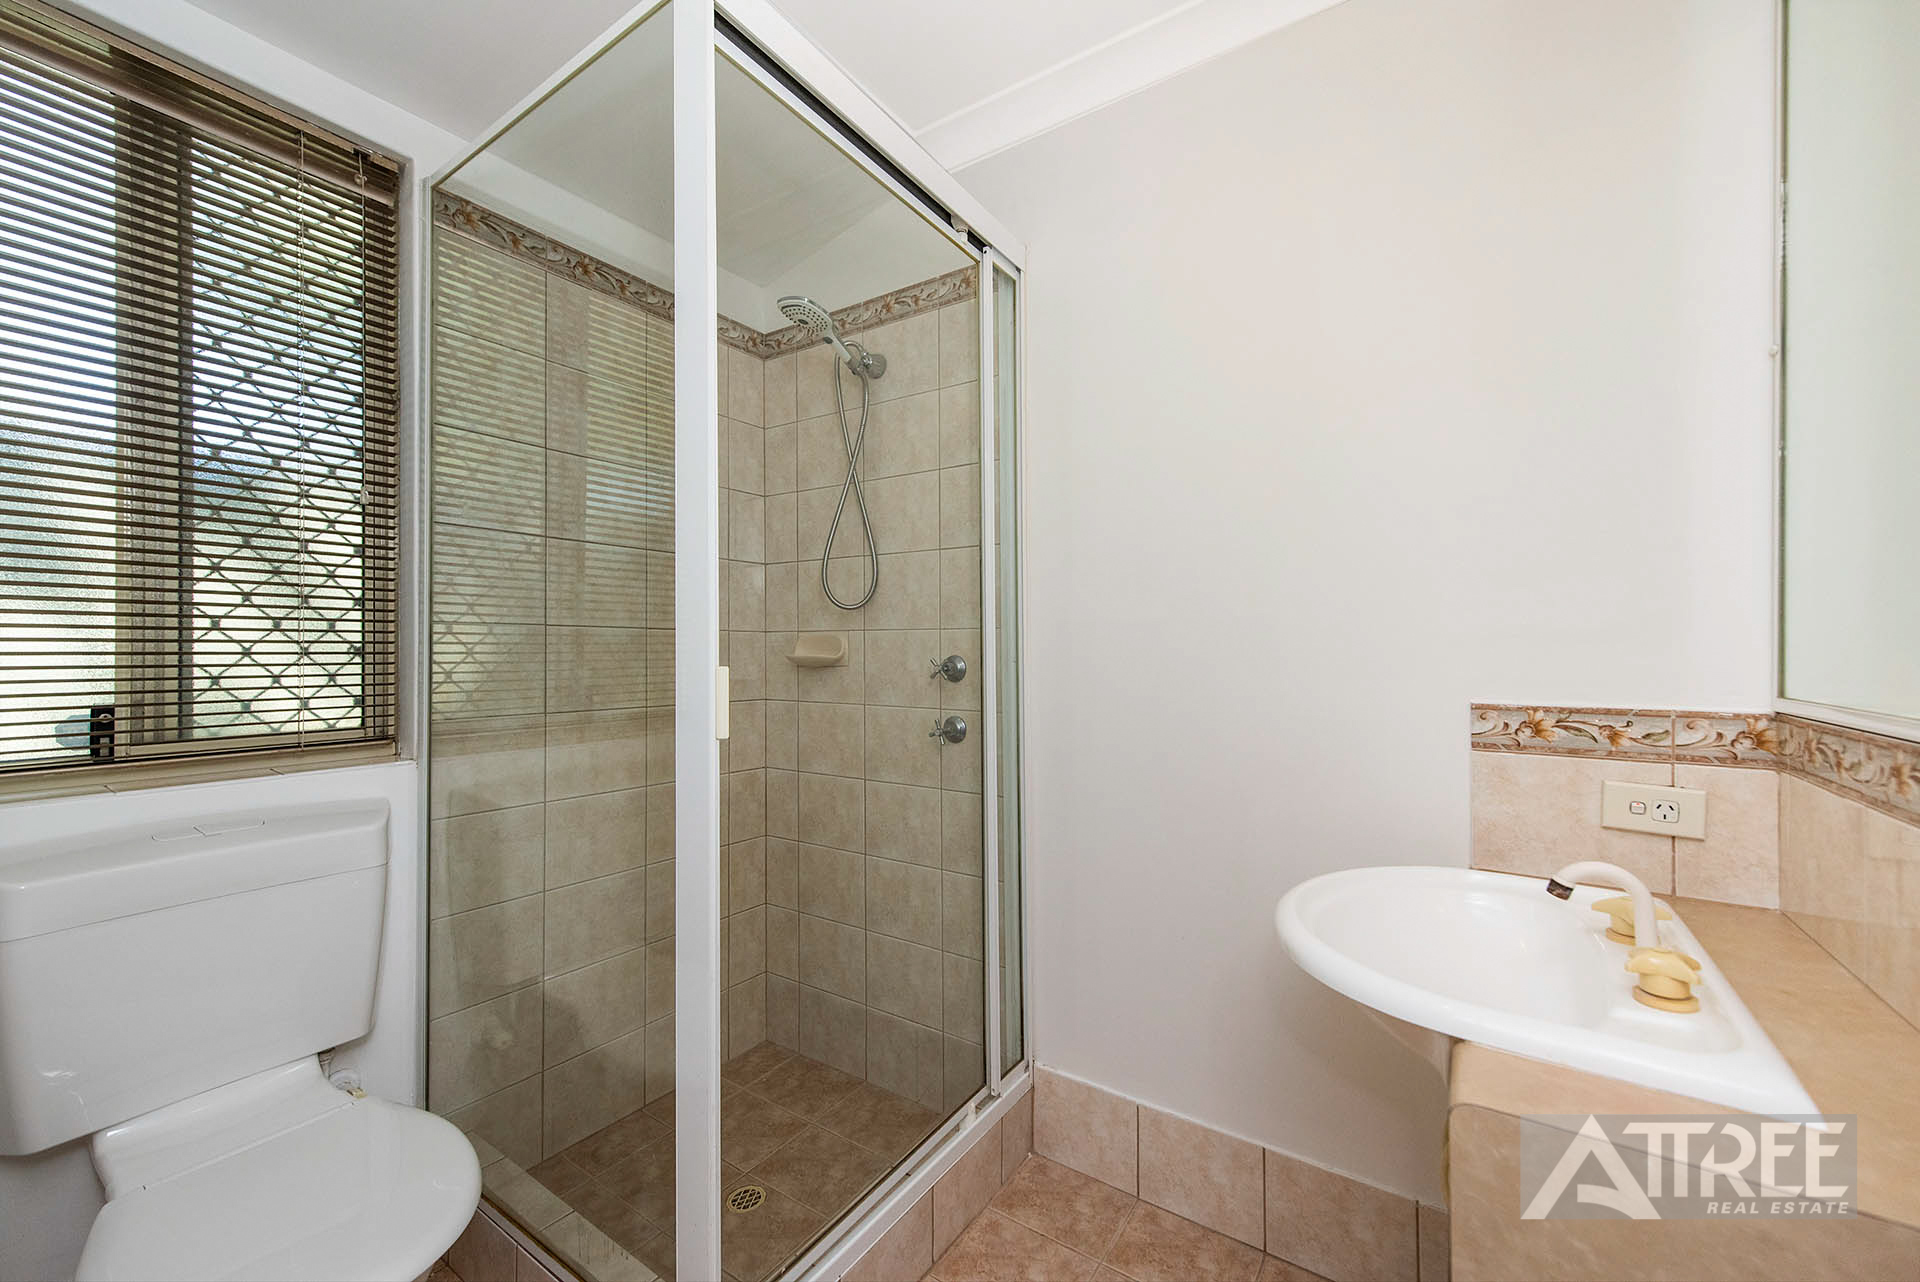 Property for sale in SOUTHERN RIVER, 149 Lakey Street : Attree Real Estate